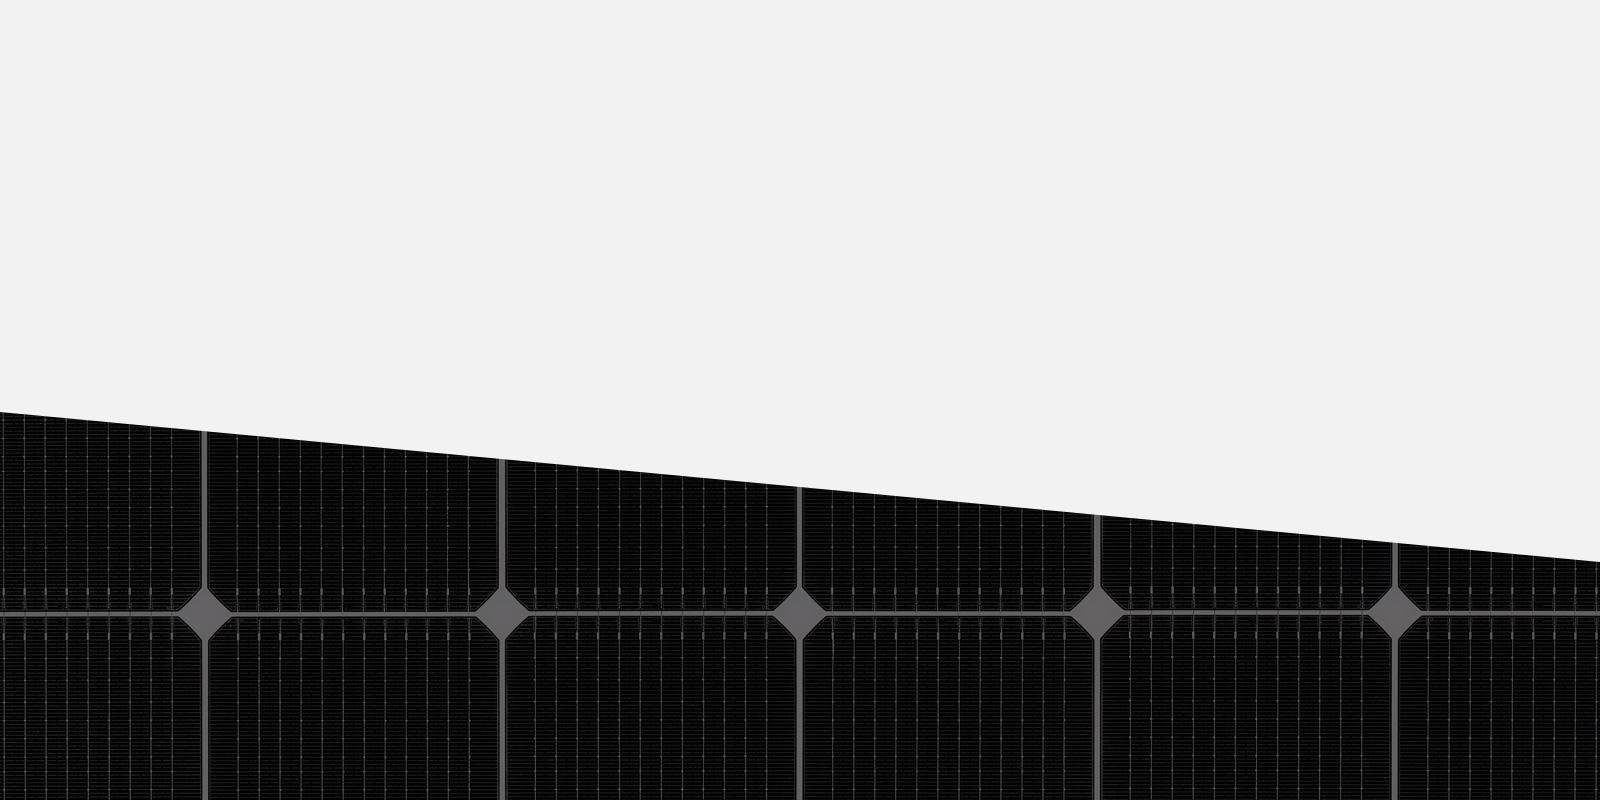 LG Solar Panels & Modules Information | LG USA Business